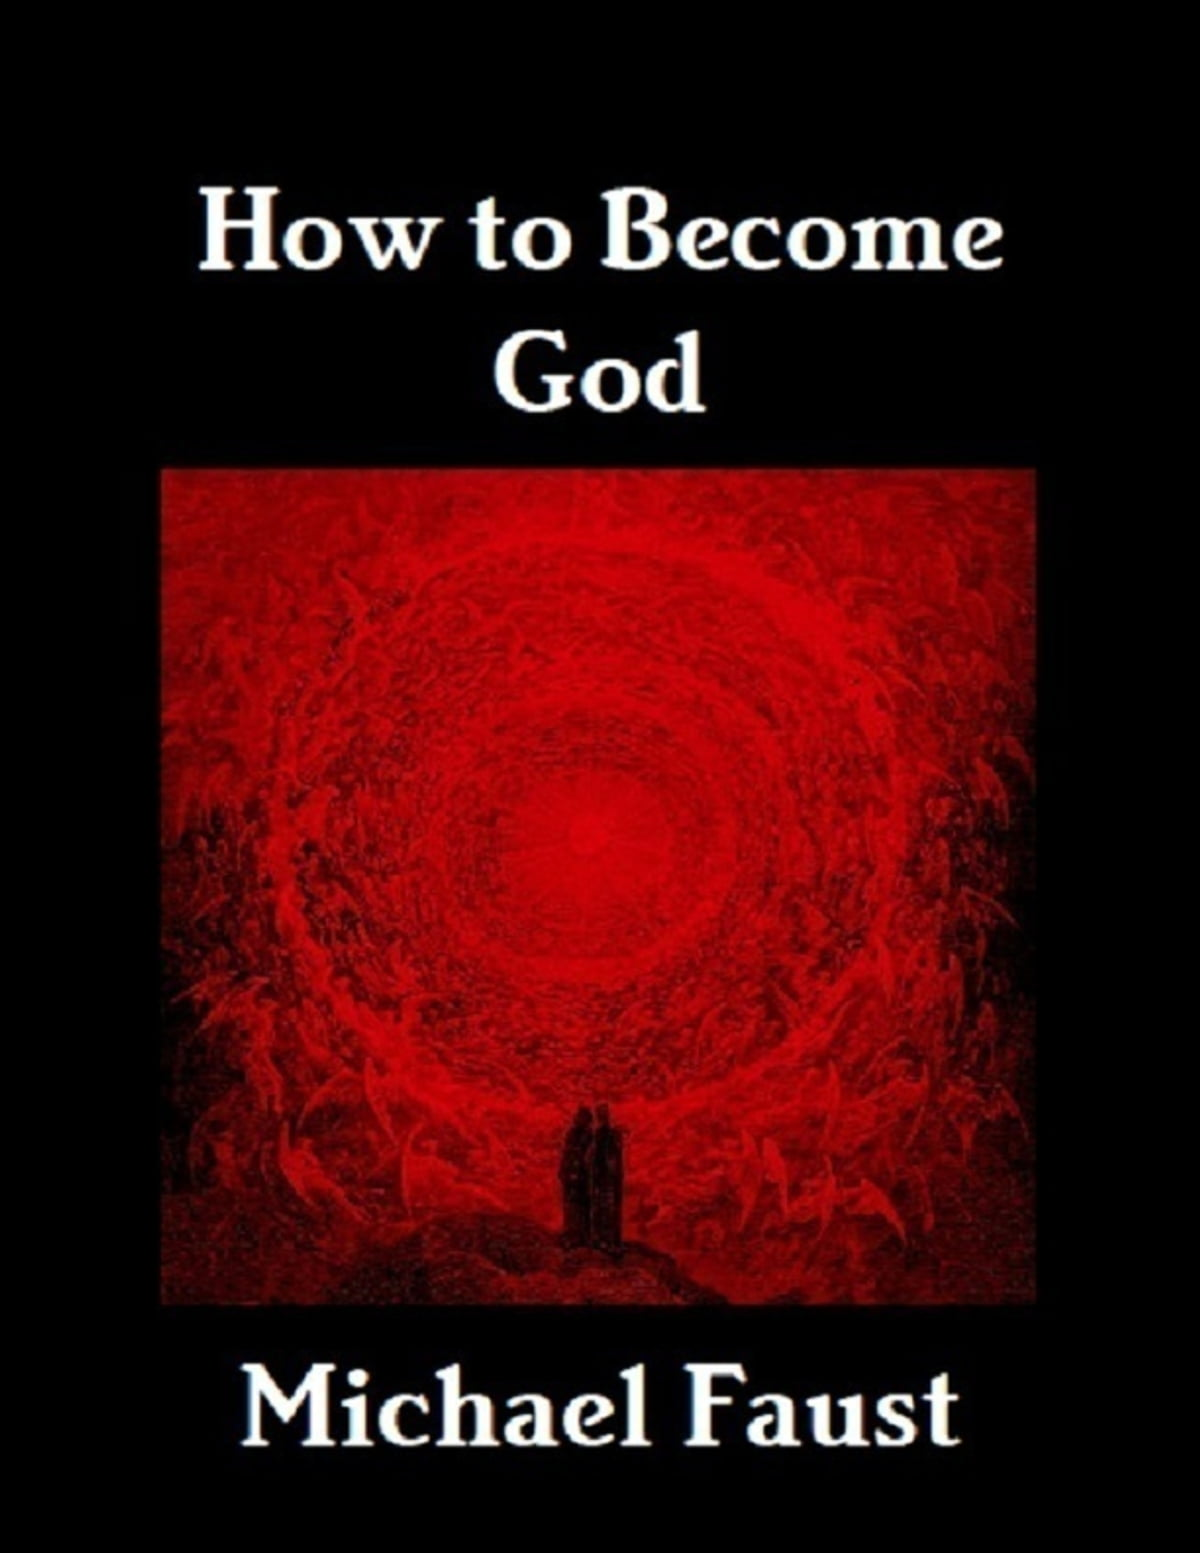 How to become a god